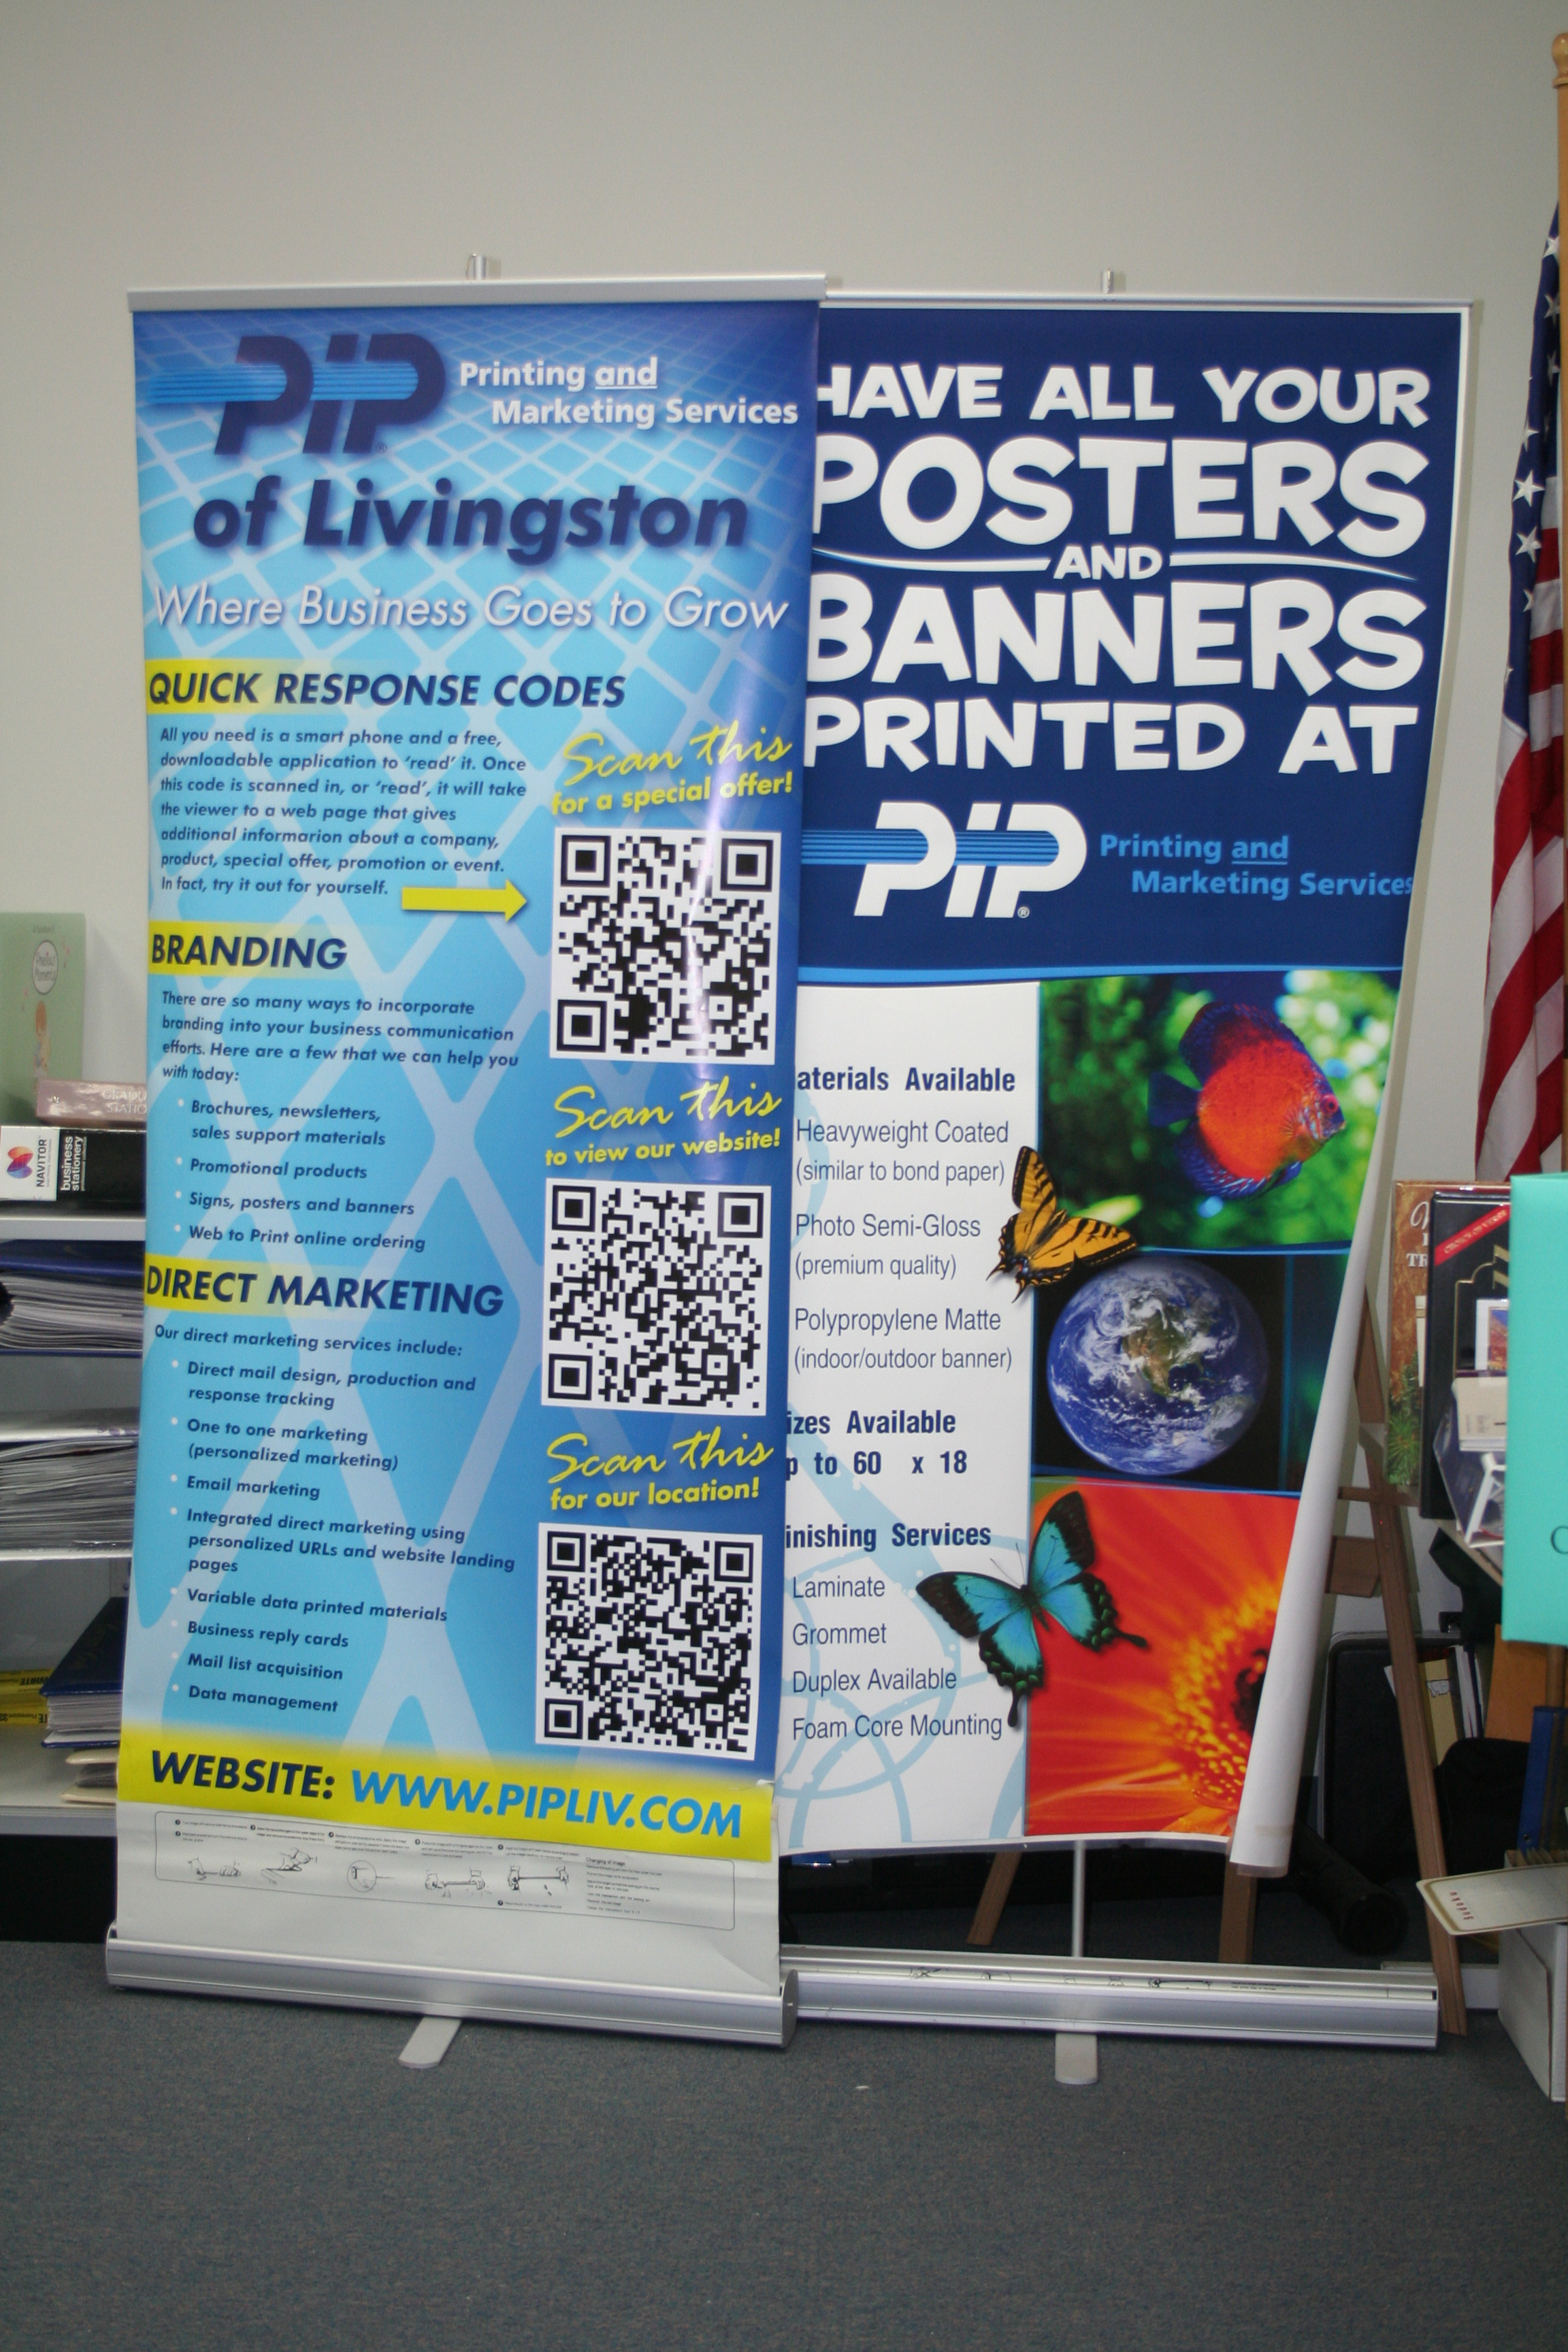 PIP Printing--Providing Traditional Copying and Printing to Mobile Marketing and Everything in Between